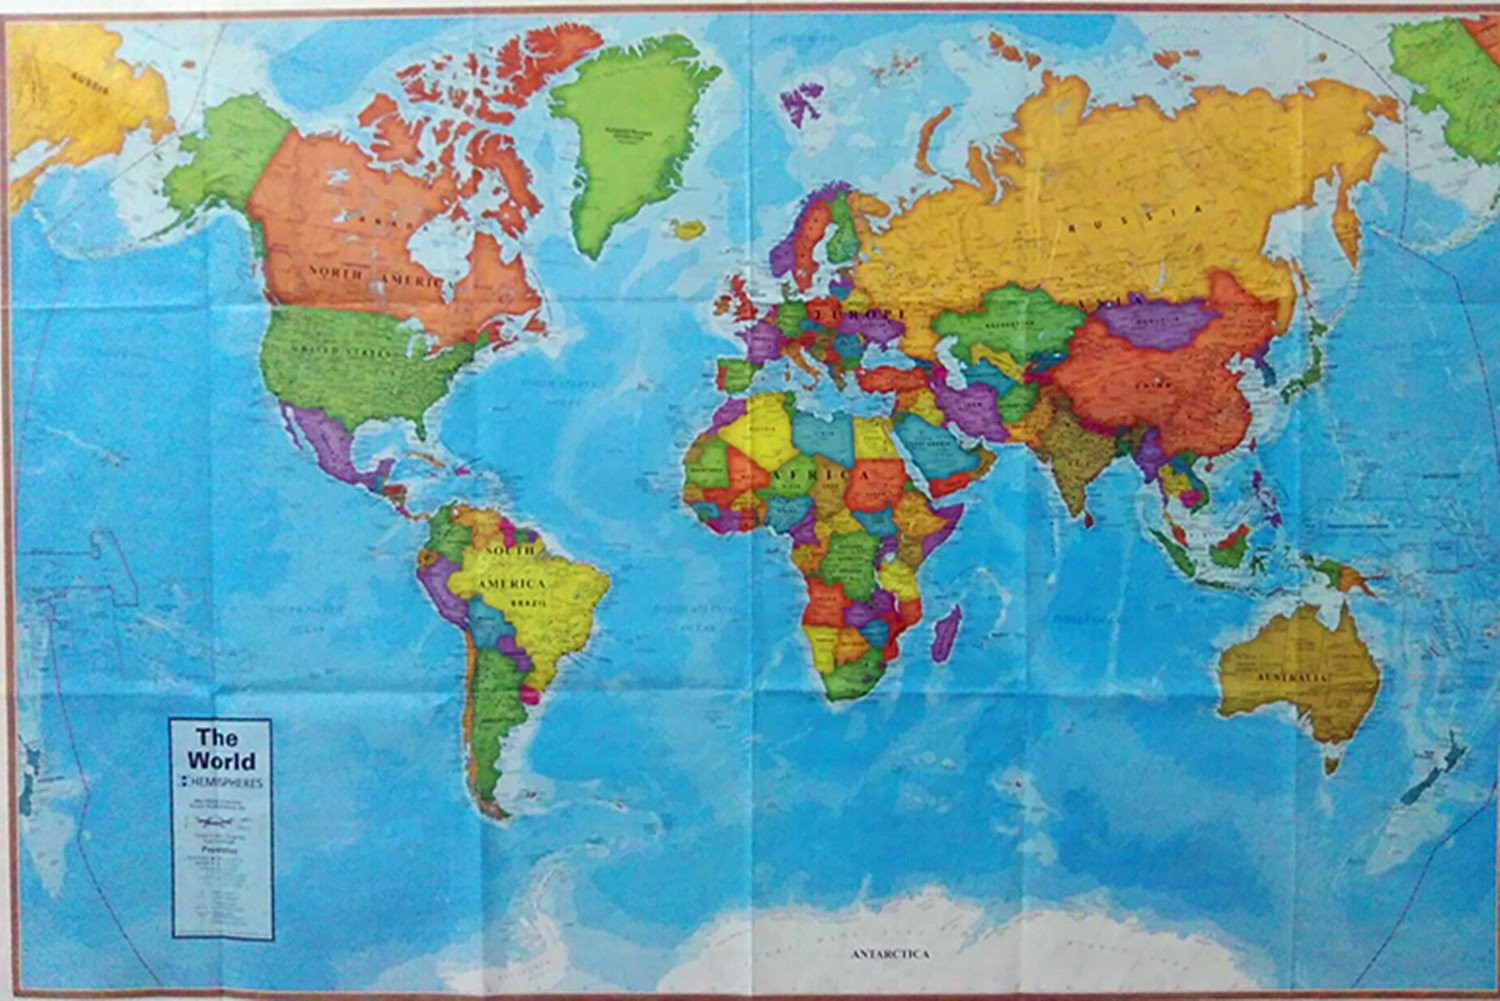 KENGEL® Tyvek 24x36 IN United States, USA,WORLD,CANDA maps Tyvek DuPont 1443R Paper MAP (24x36, United States)